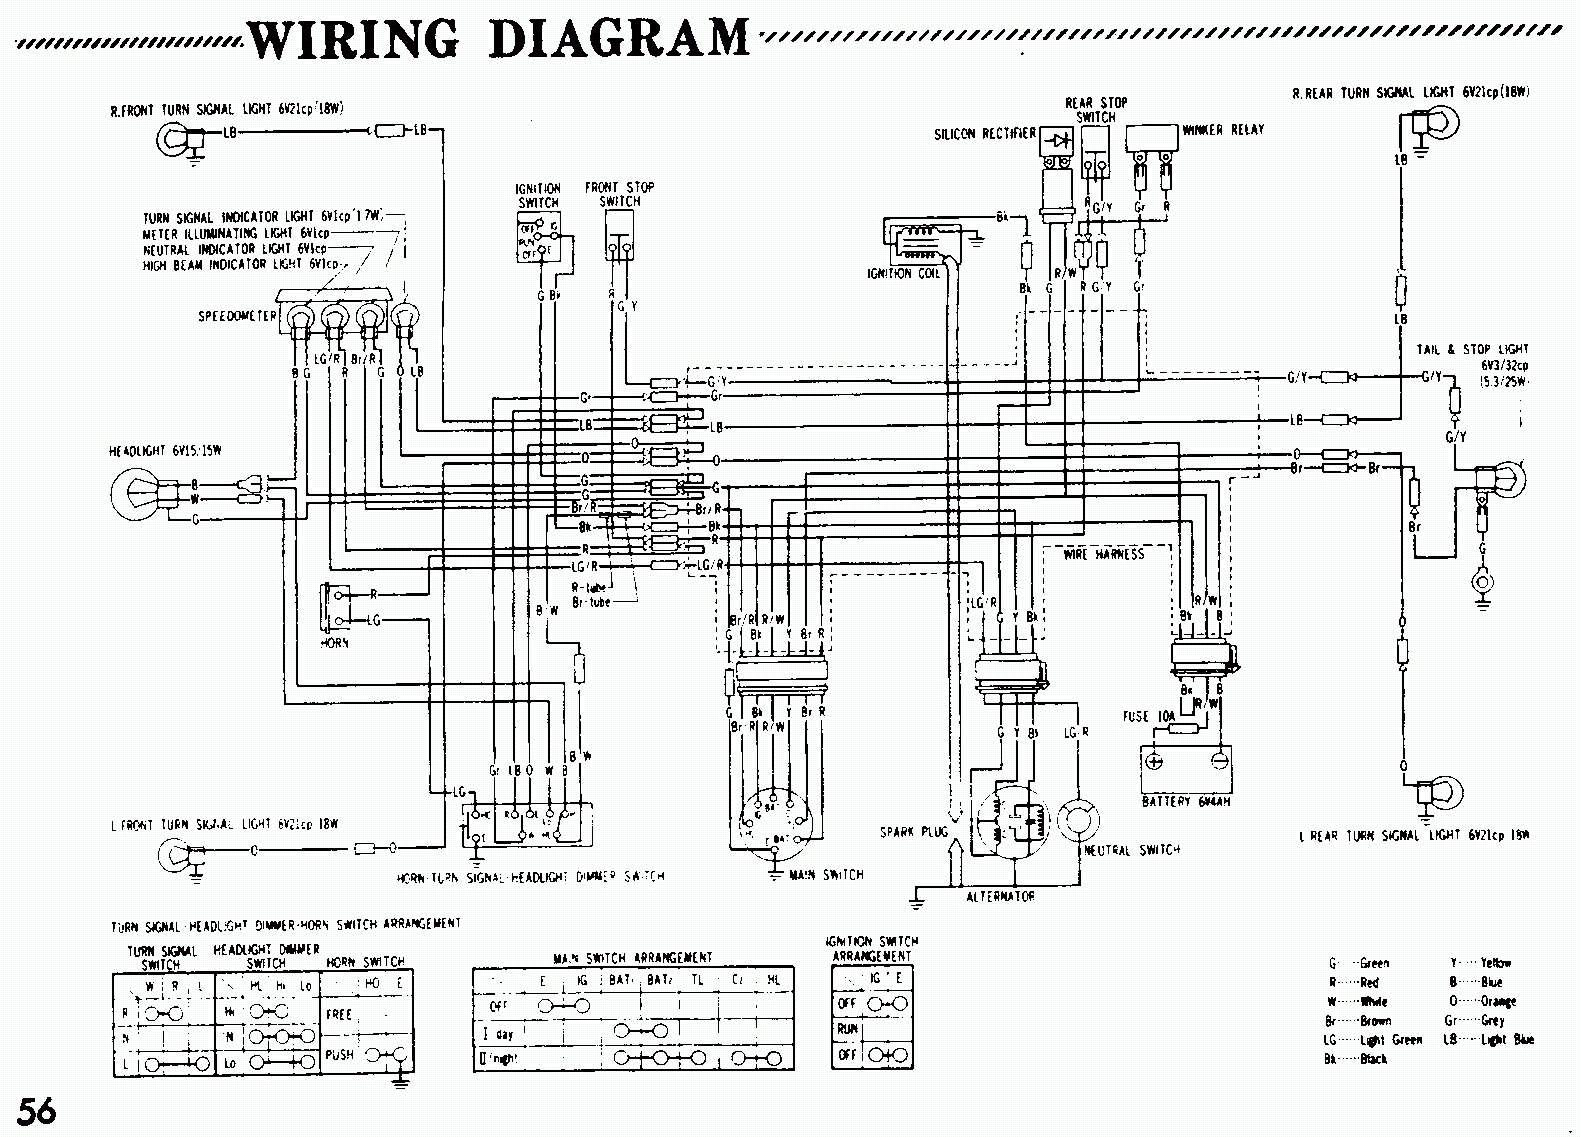 honda quad wiring diagram choice image diagram sample Wiring Diagram for Tao Tao 110Cc 4 Wheeler Need a Picture of a 110 ATV Wiring Diagram